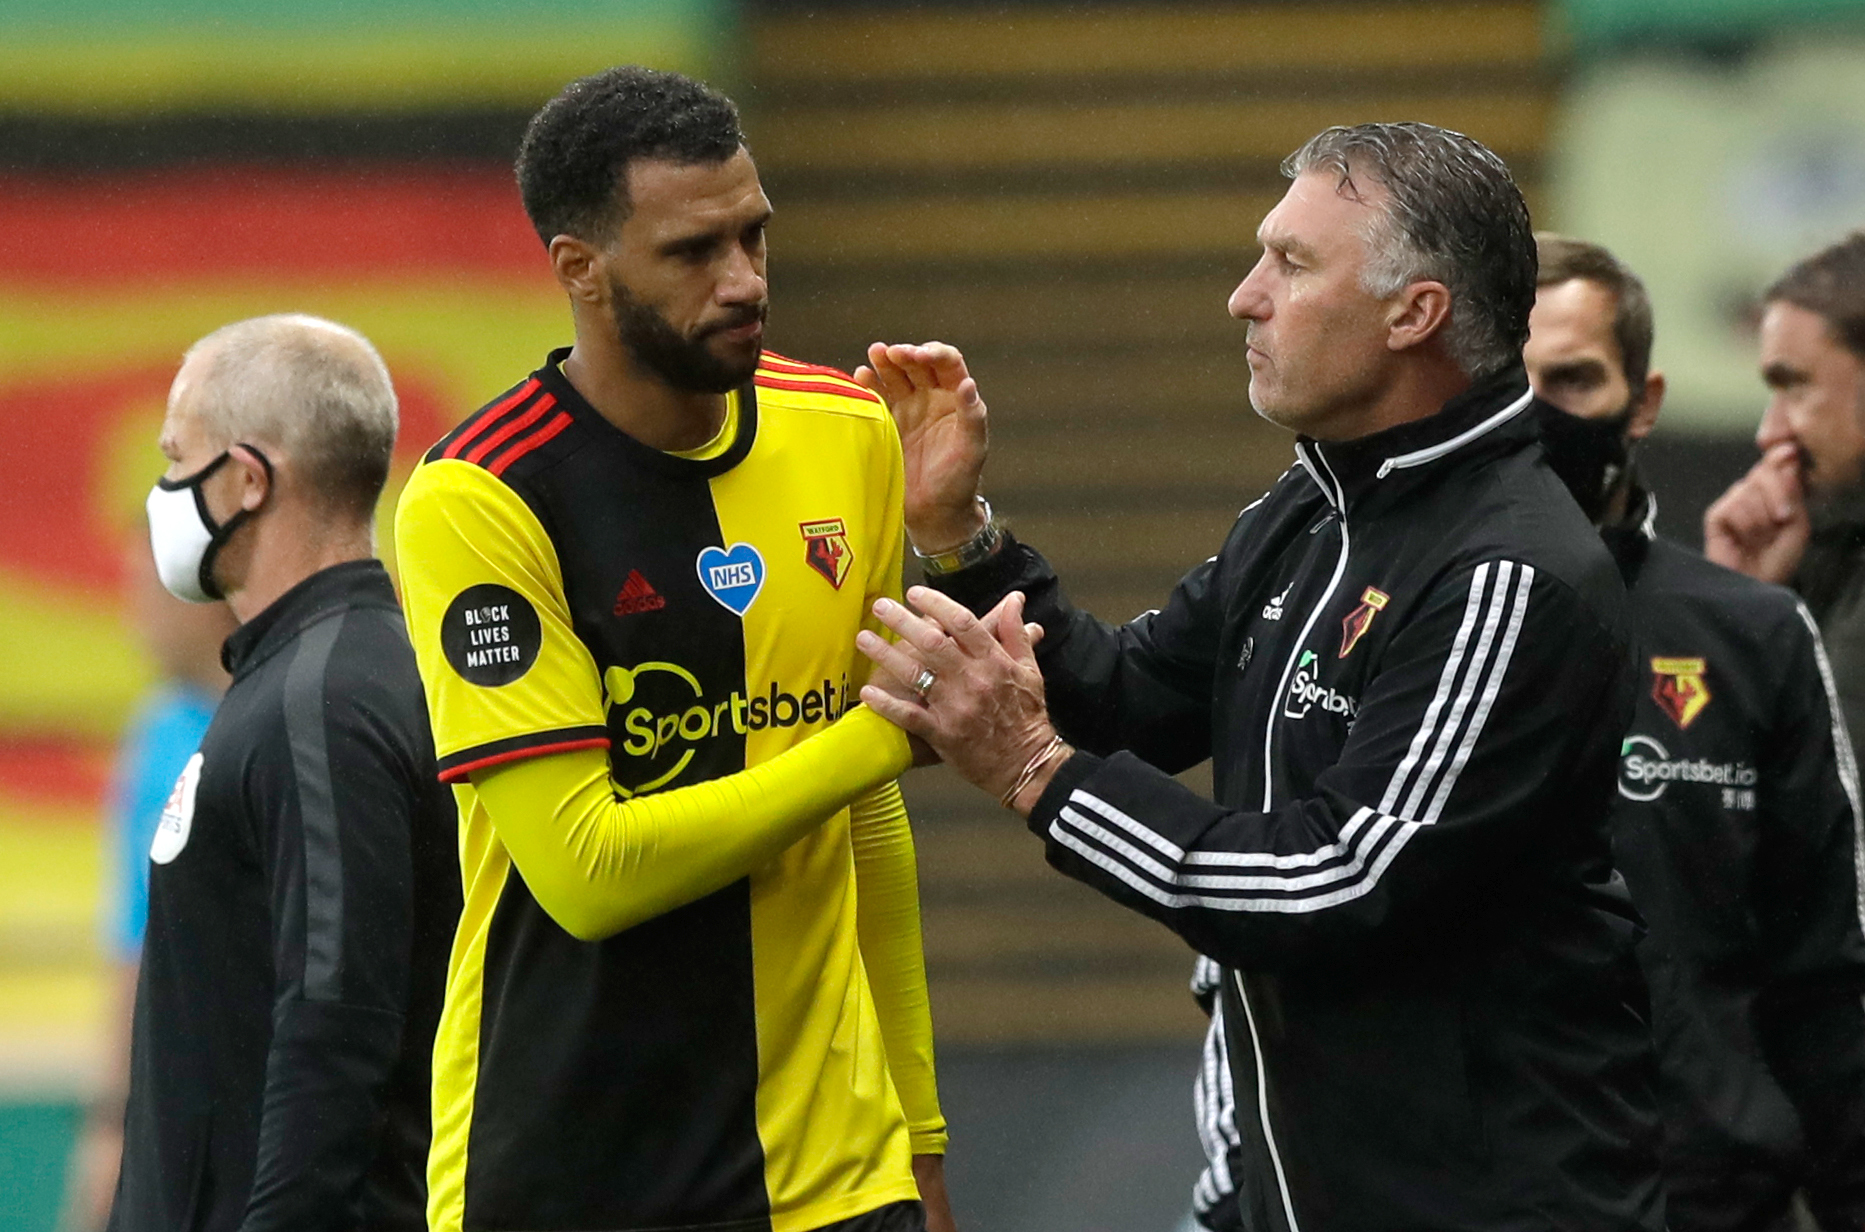 Watford manager Nigel Pearson greets Etienne Capoue (left) as he is substituted off the pitch during the Premier League match at Vicarage Road, Watford.